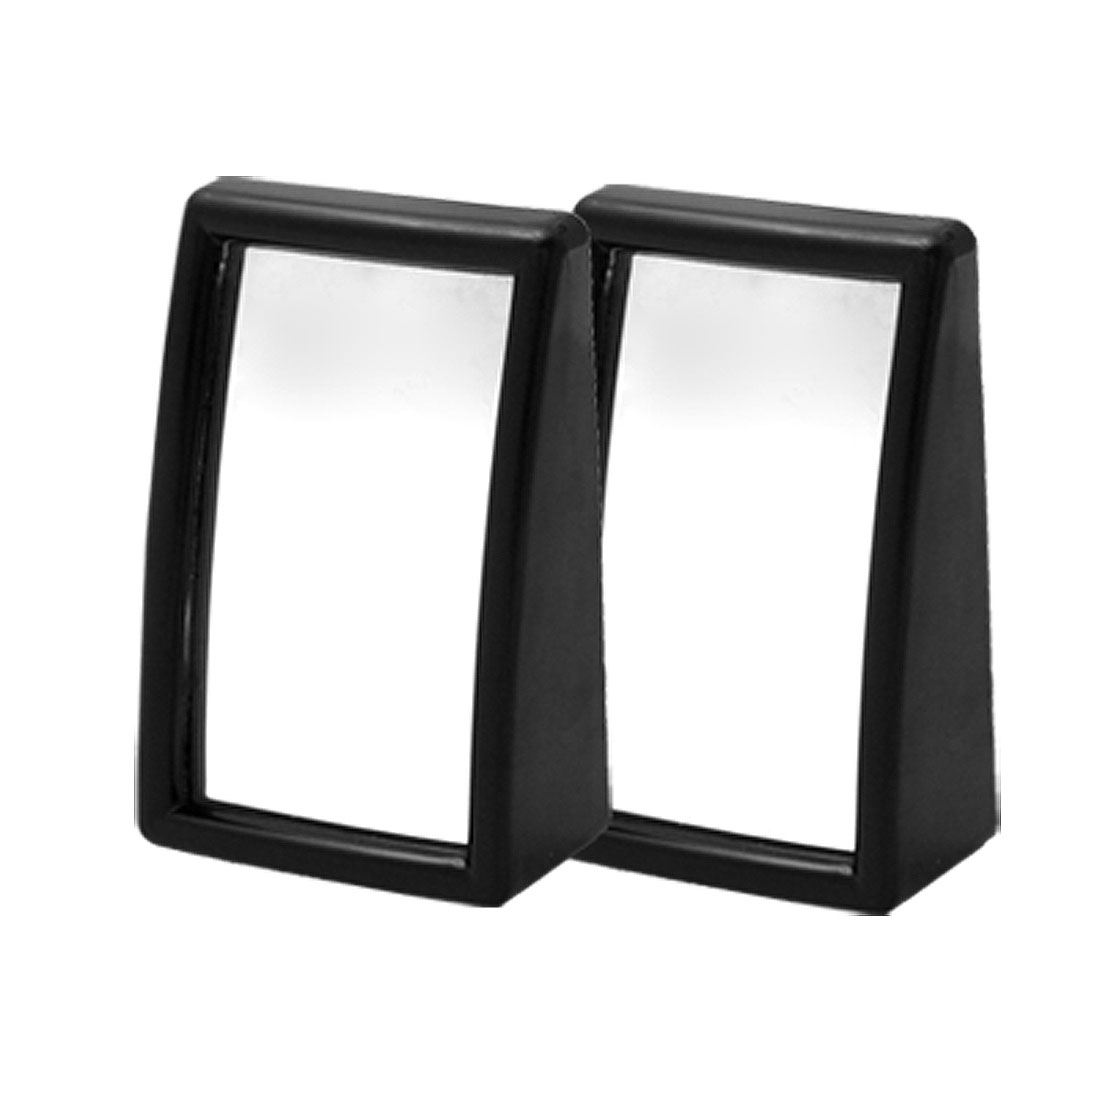 Black Two Wide Angle Convex Blind Spot Mirrors 2 Pcs